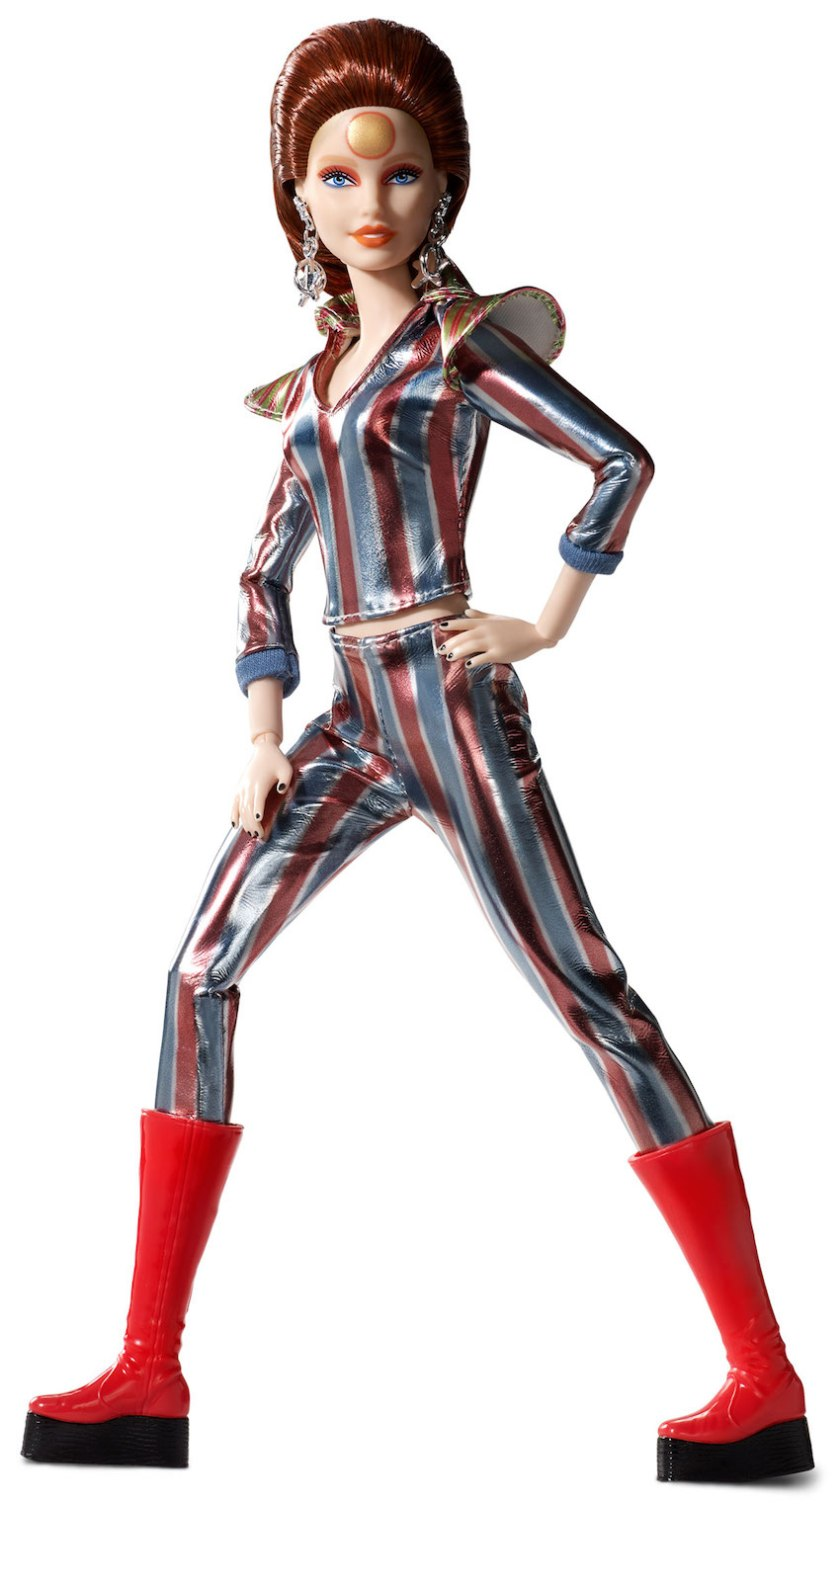 david-bowie-barbie-doll